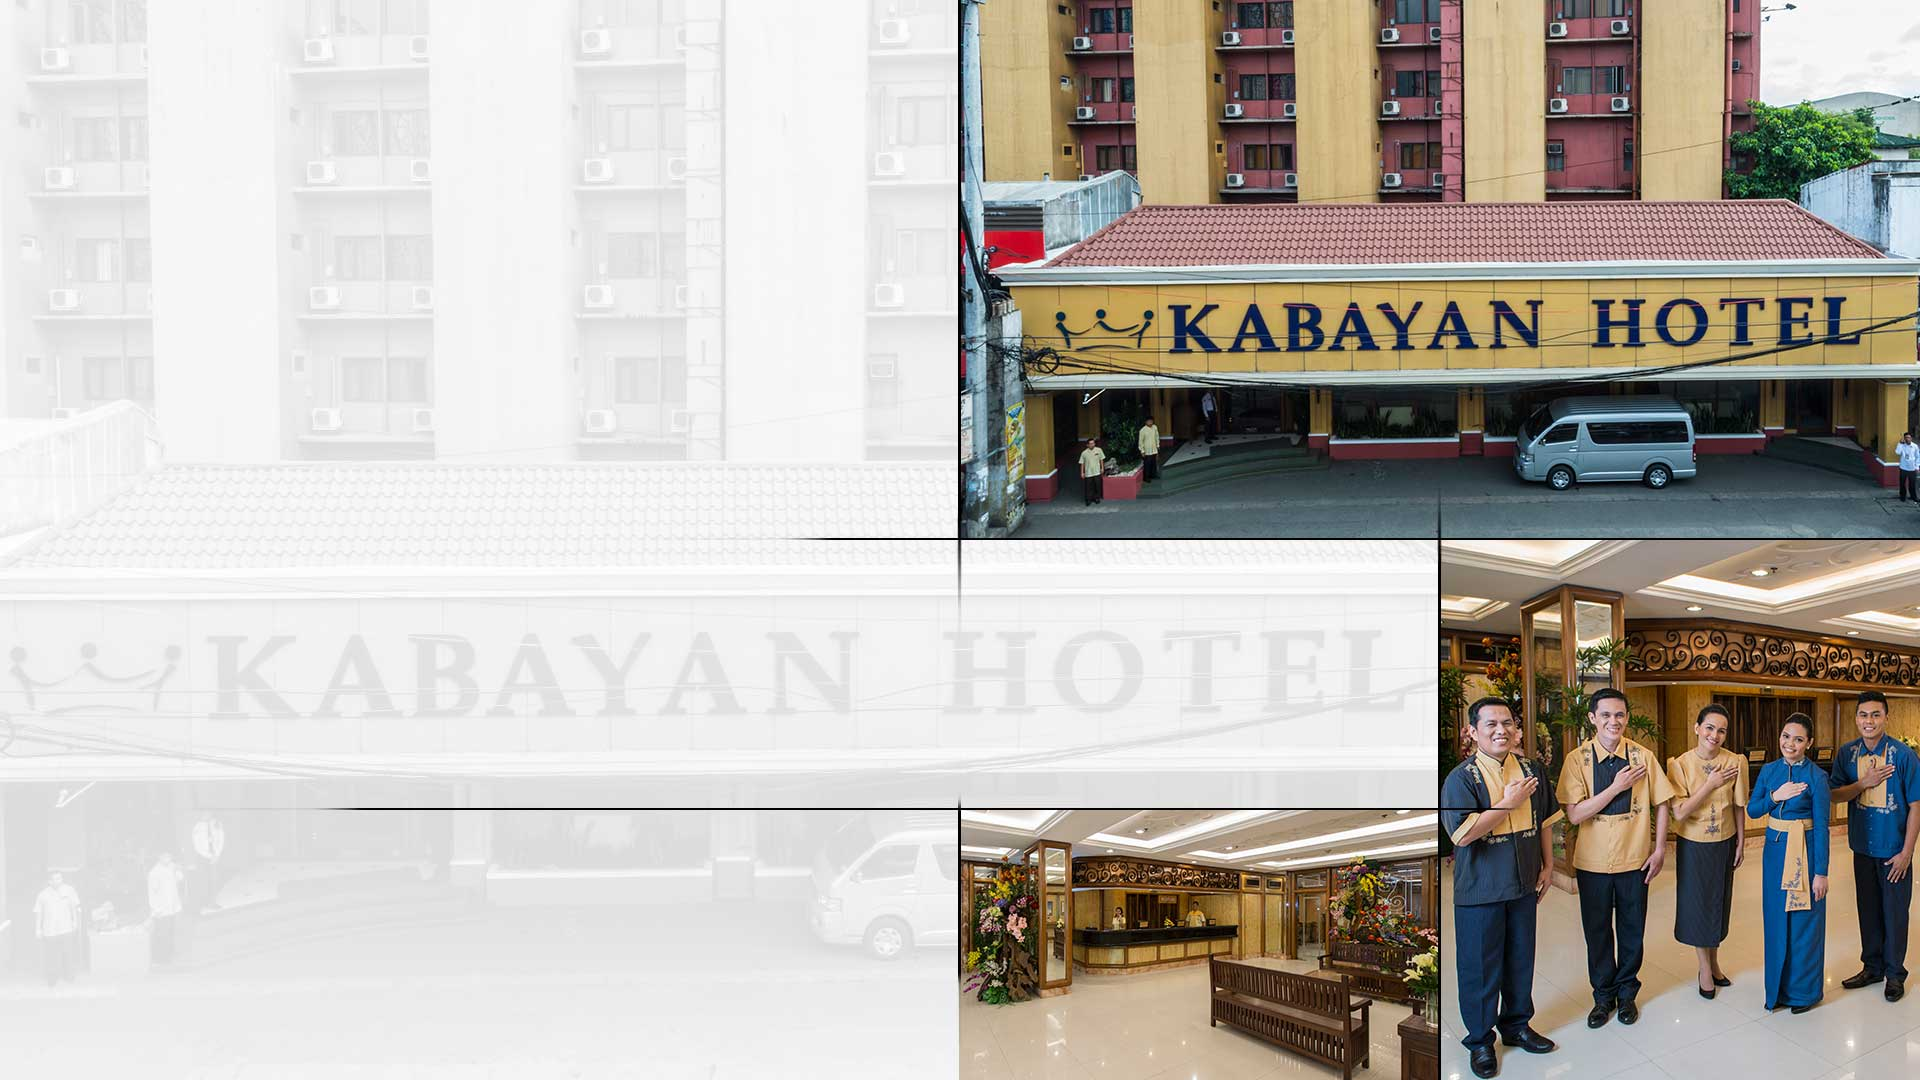 Hotel in pasay city philippines kabayan hotel location gumiabroncs Gallery